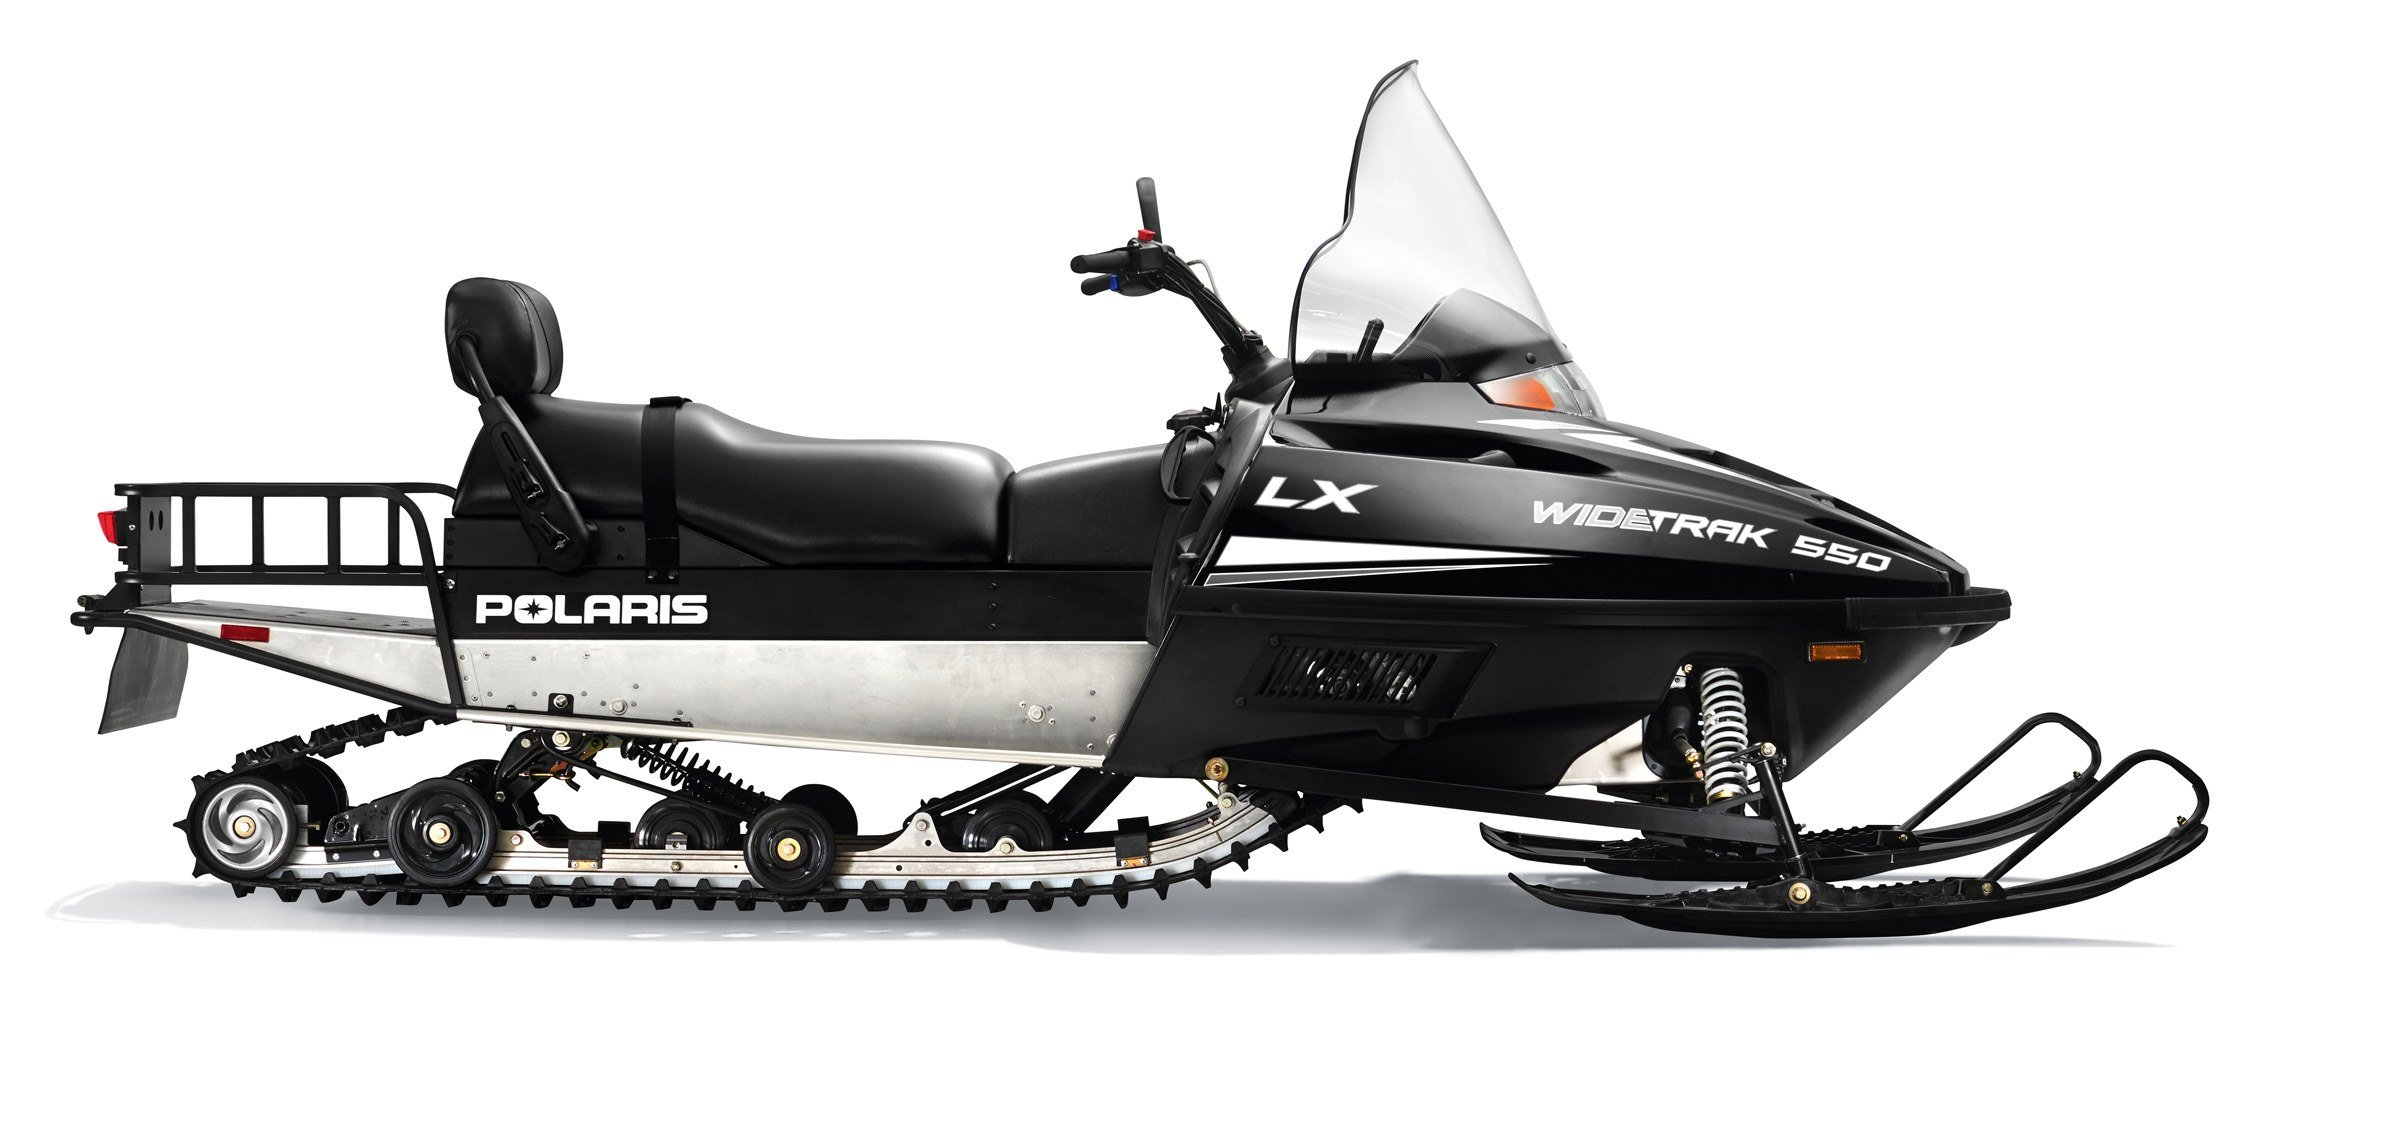 2016 Polaris 550 Widetrak LX ES in Algona, Iowa - Photo 2